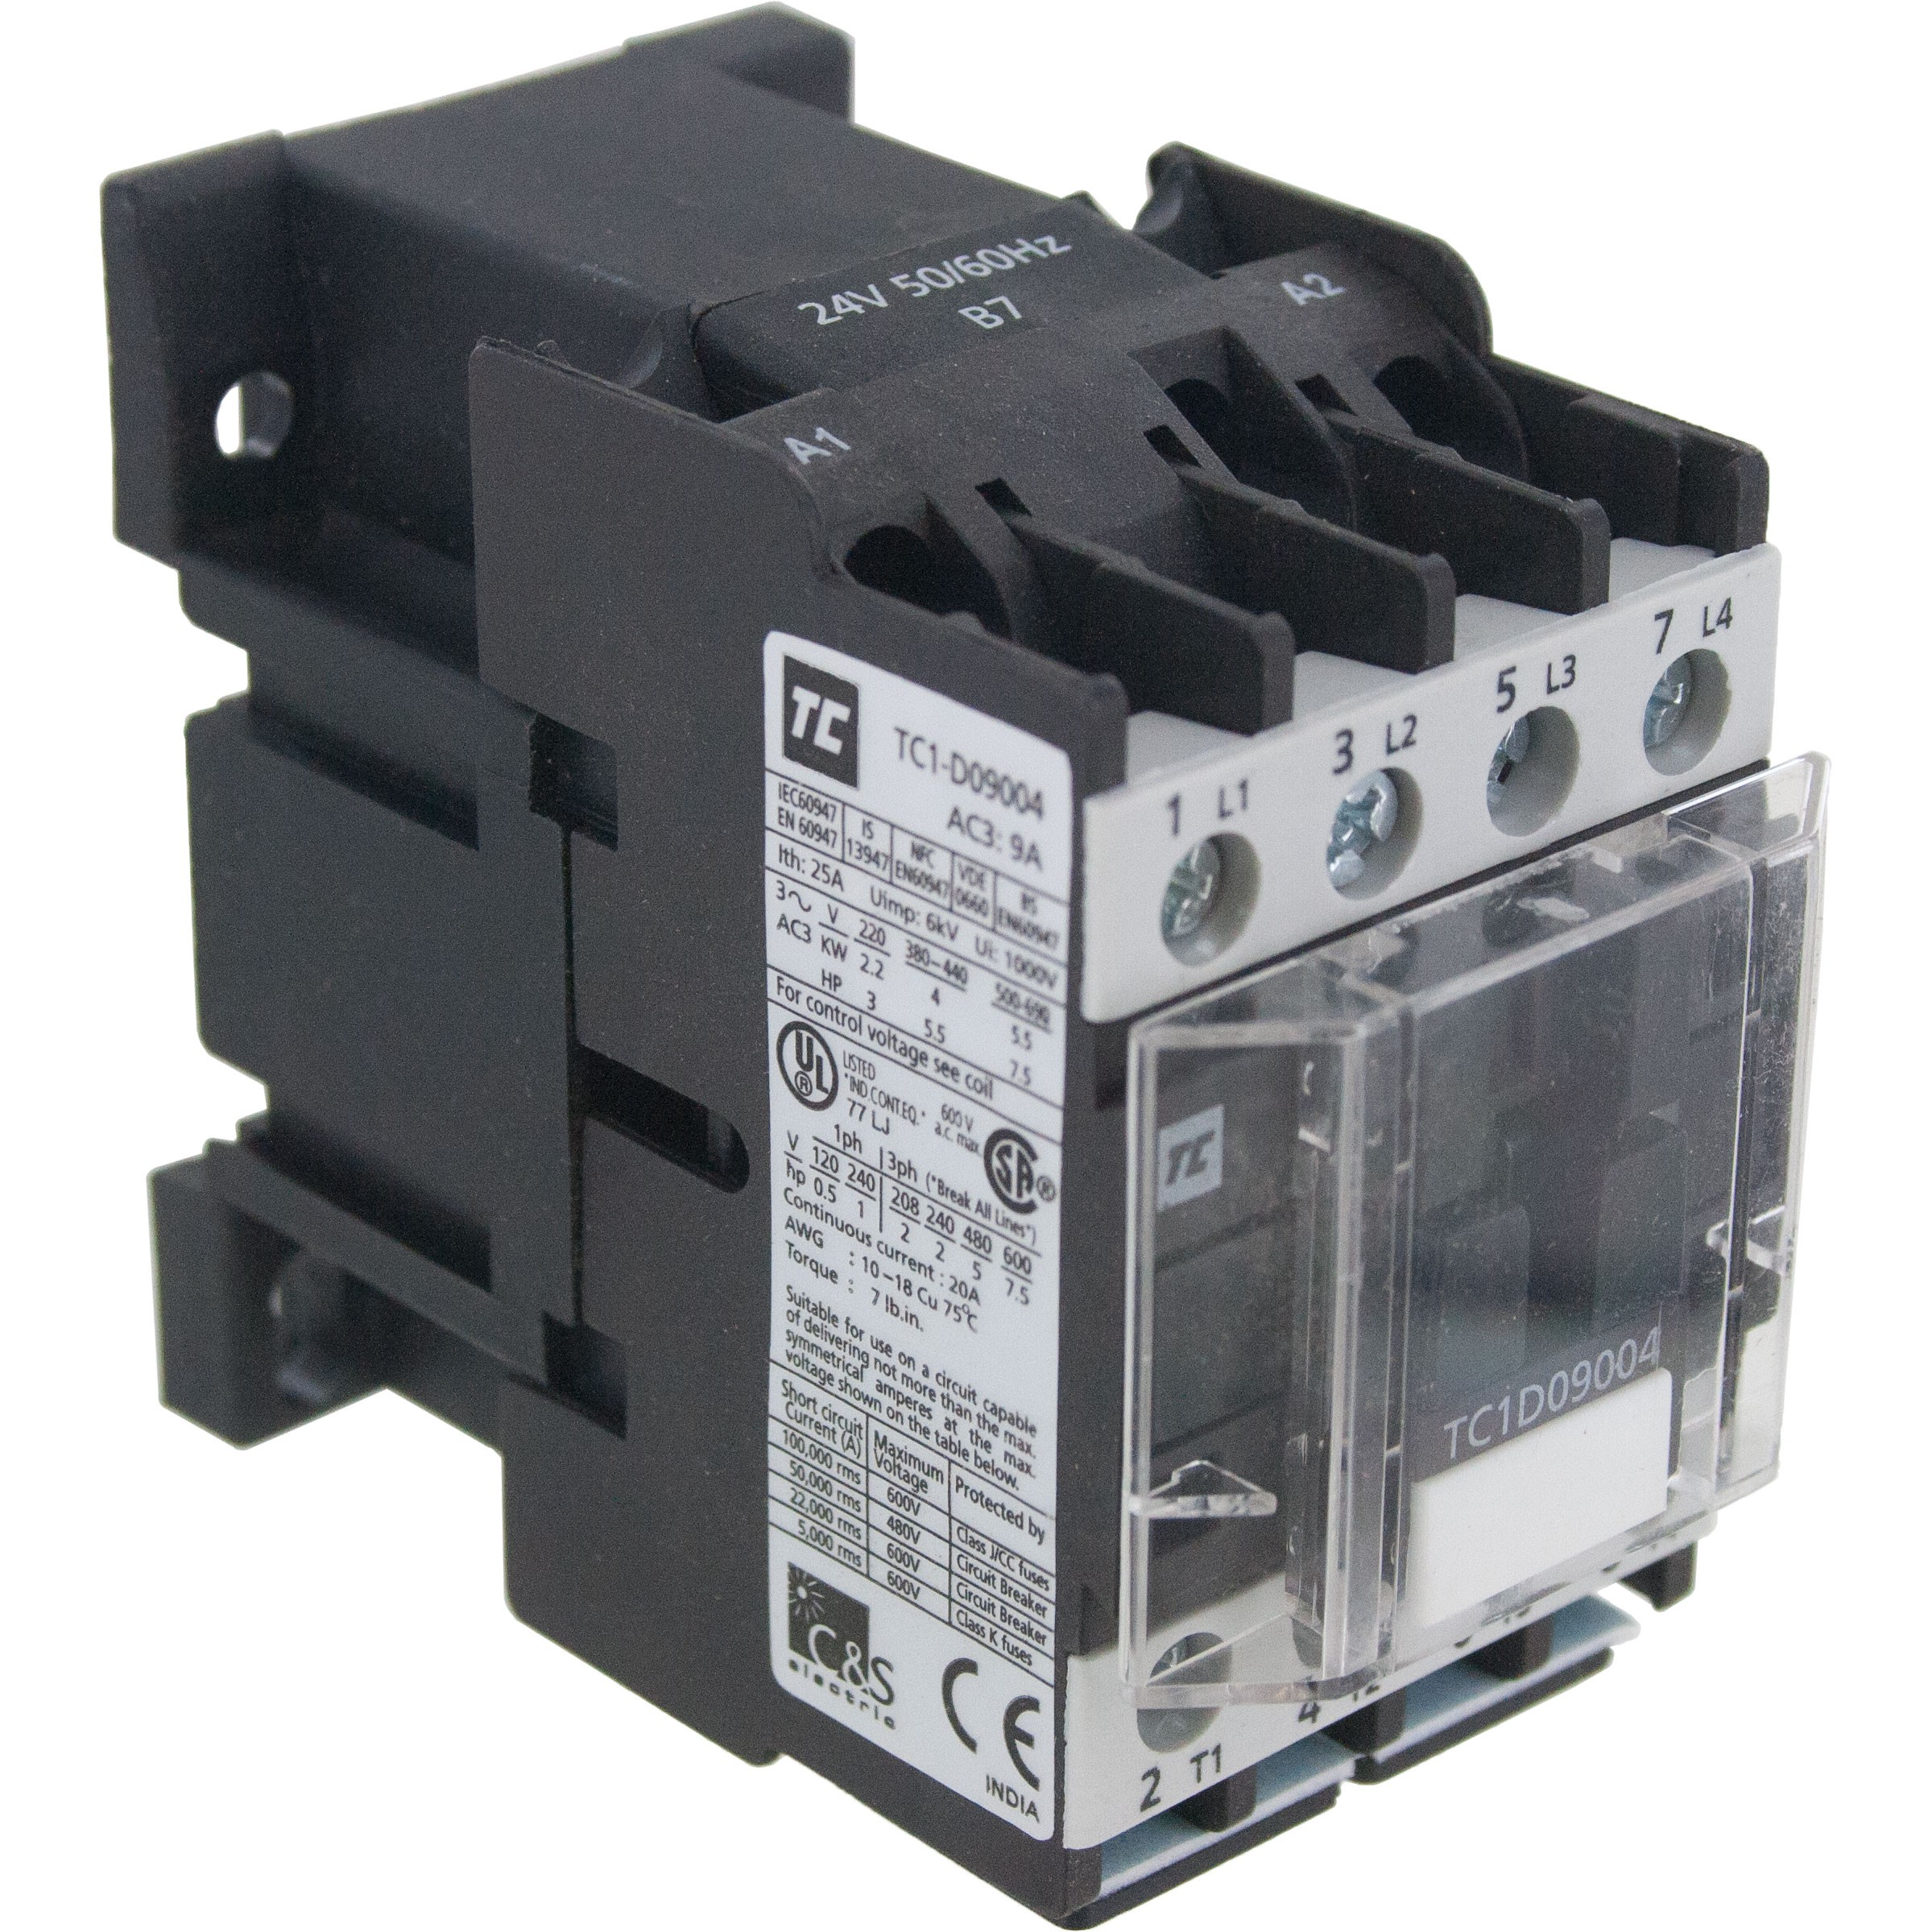 4 Pole Contactor 9 Amp 4 N/O 220 Volt AC Coil Angle